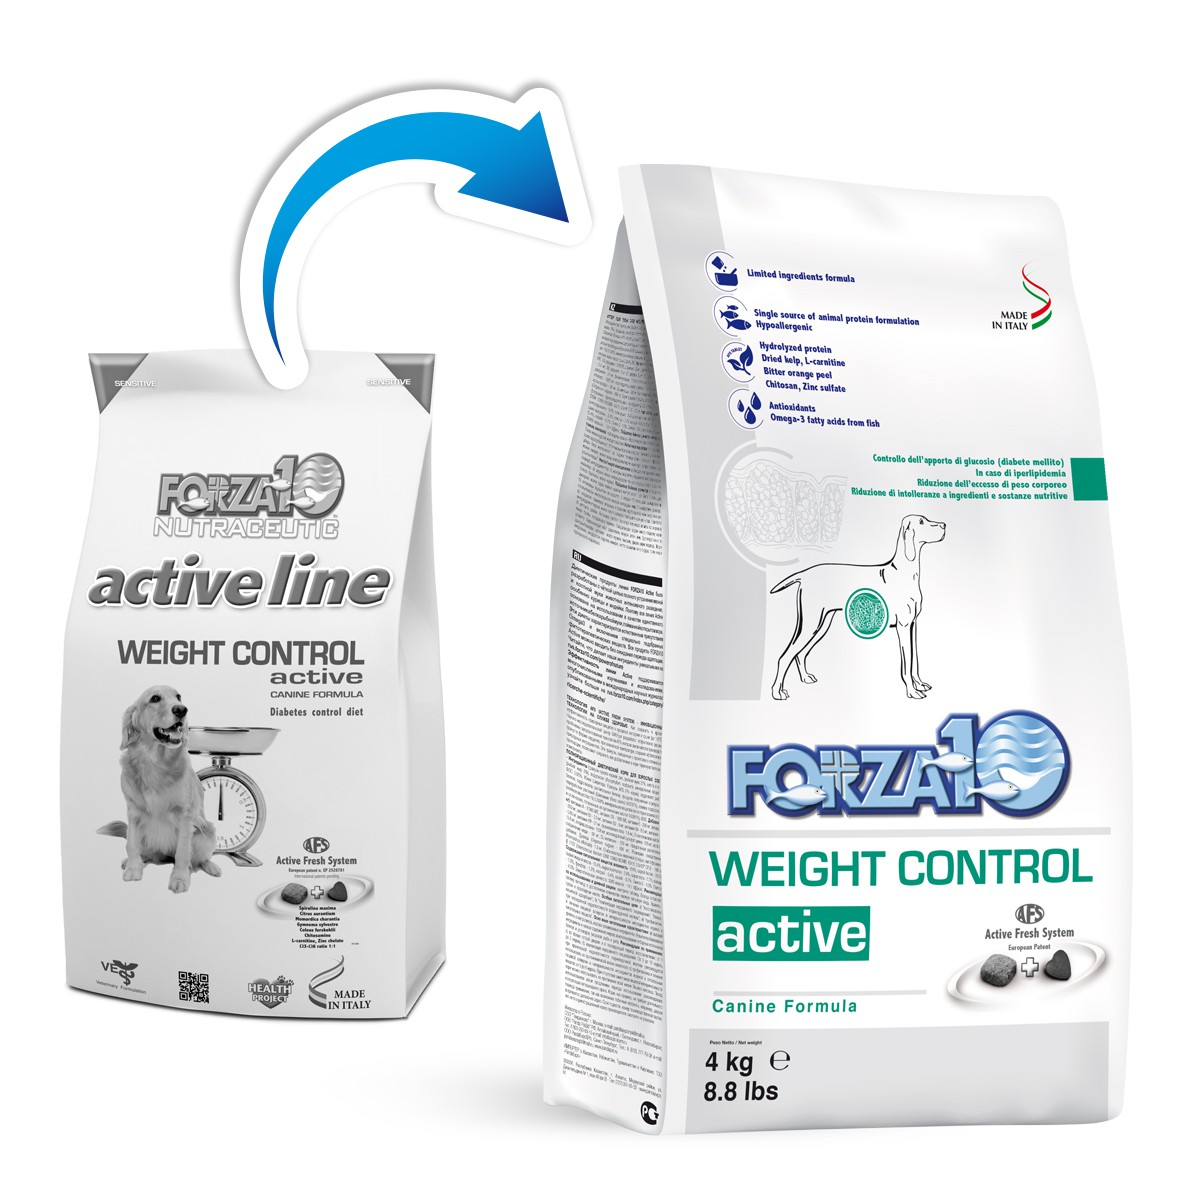 FORZA 10 CANE WEIGHT CONTROL ACTIVE 4KG